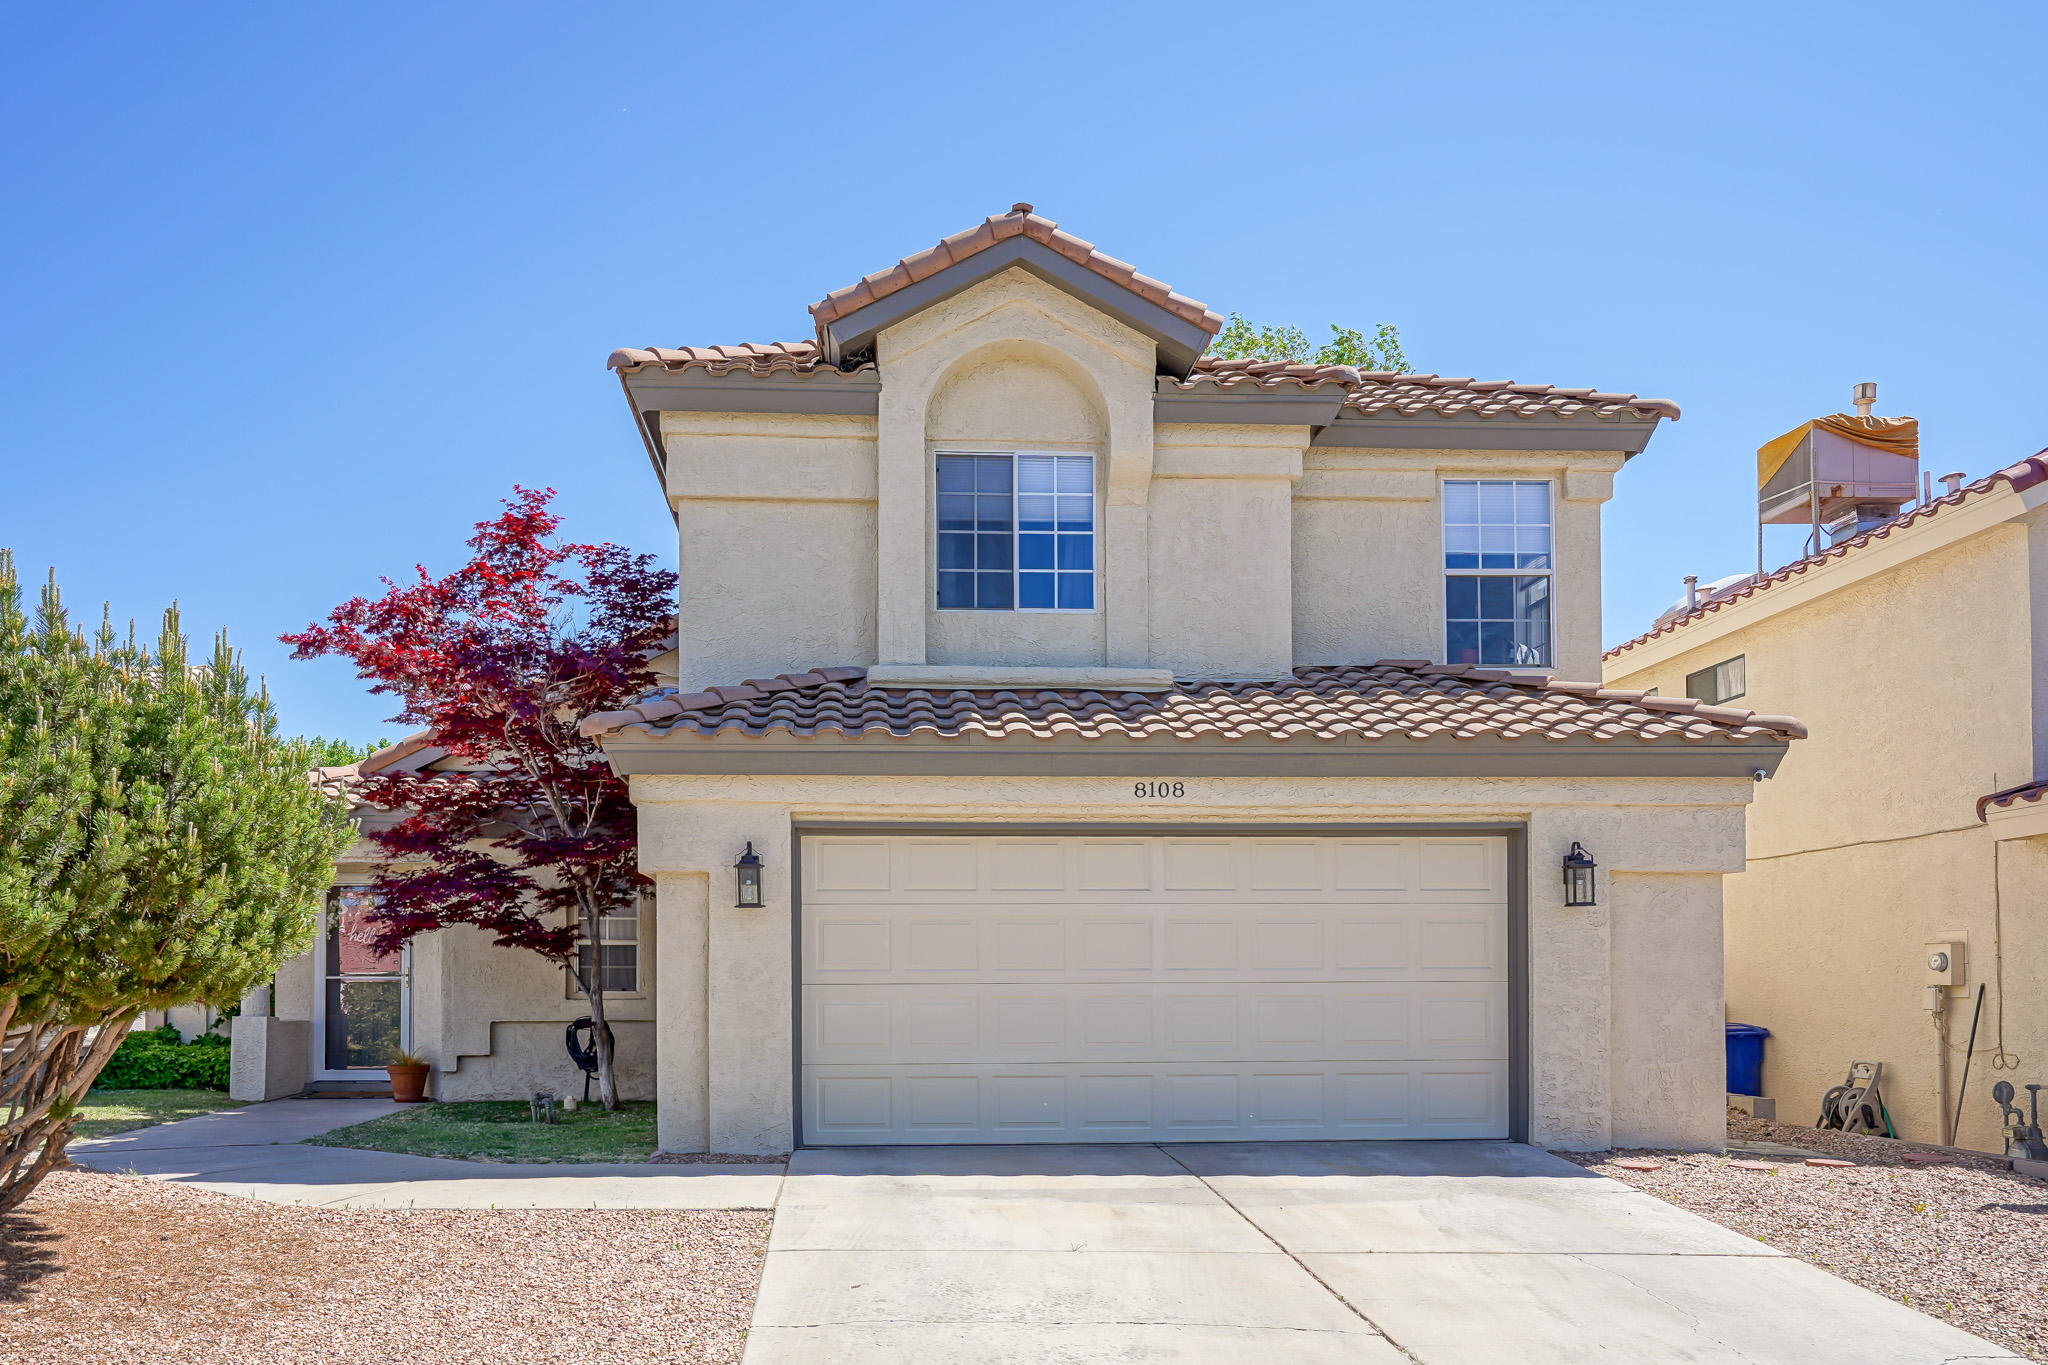 This well kept La Cueva property is sure to impress you! Walk-in and enjoy the large and bright family room with vaulted ceilings. The updated large kitchen offers plenty of countertop space. Off the kitchen there's an additional space that can be utlilized as a second living area or additional dining room. The open concept layout is great for entertaining! The master suite is nicely sized and the bathroom has 2 vanities, separate tub and shower, and a walk-in closet.The backyard offers an open patio, a beautiful green lawn and shade trees... prefect for your summer BBQs.This home has several new updates - granite countertops, fresh paint, light fixtures, Pella storm door, and window coverings. The TPO roof is newer (2017), and stucco/trim has been recently painted.